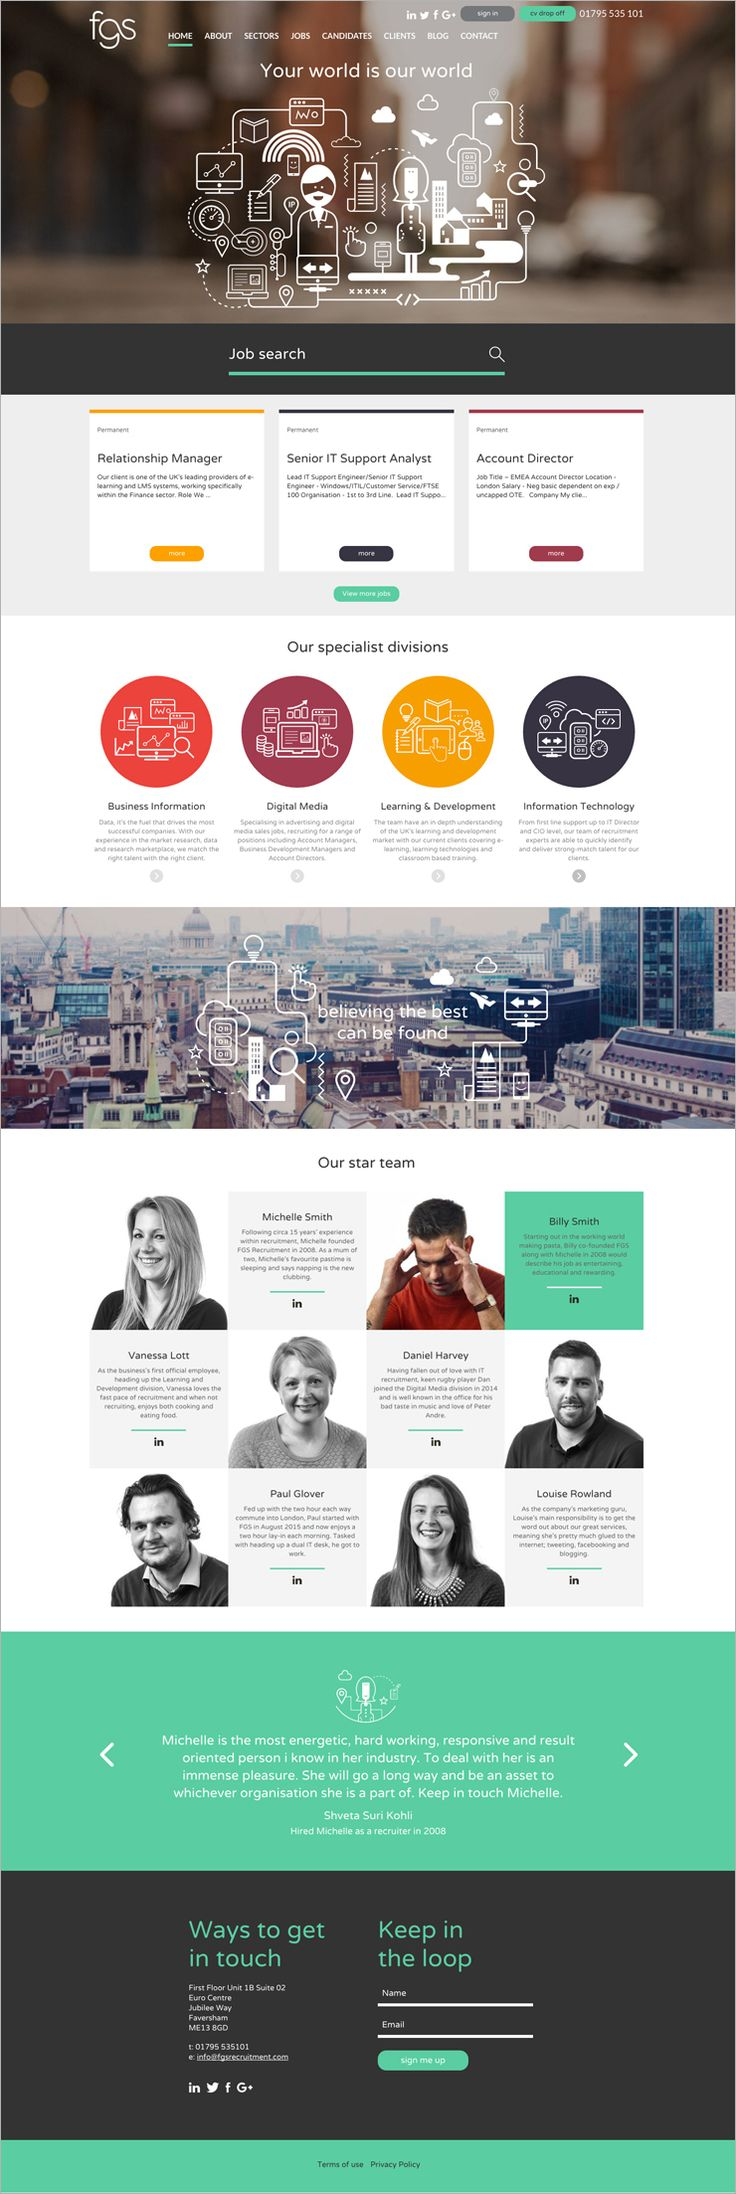 Website About Us Page Template 3351064 Hitori49fo